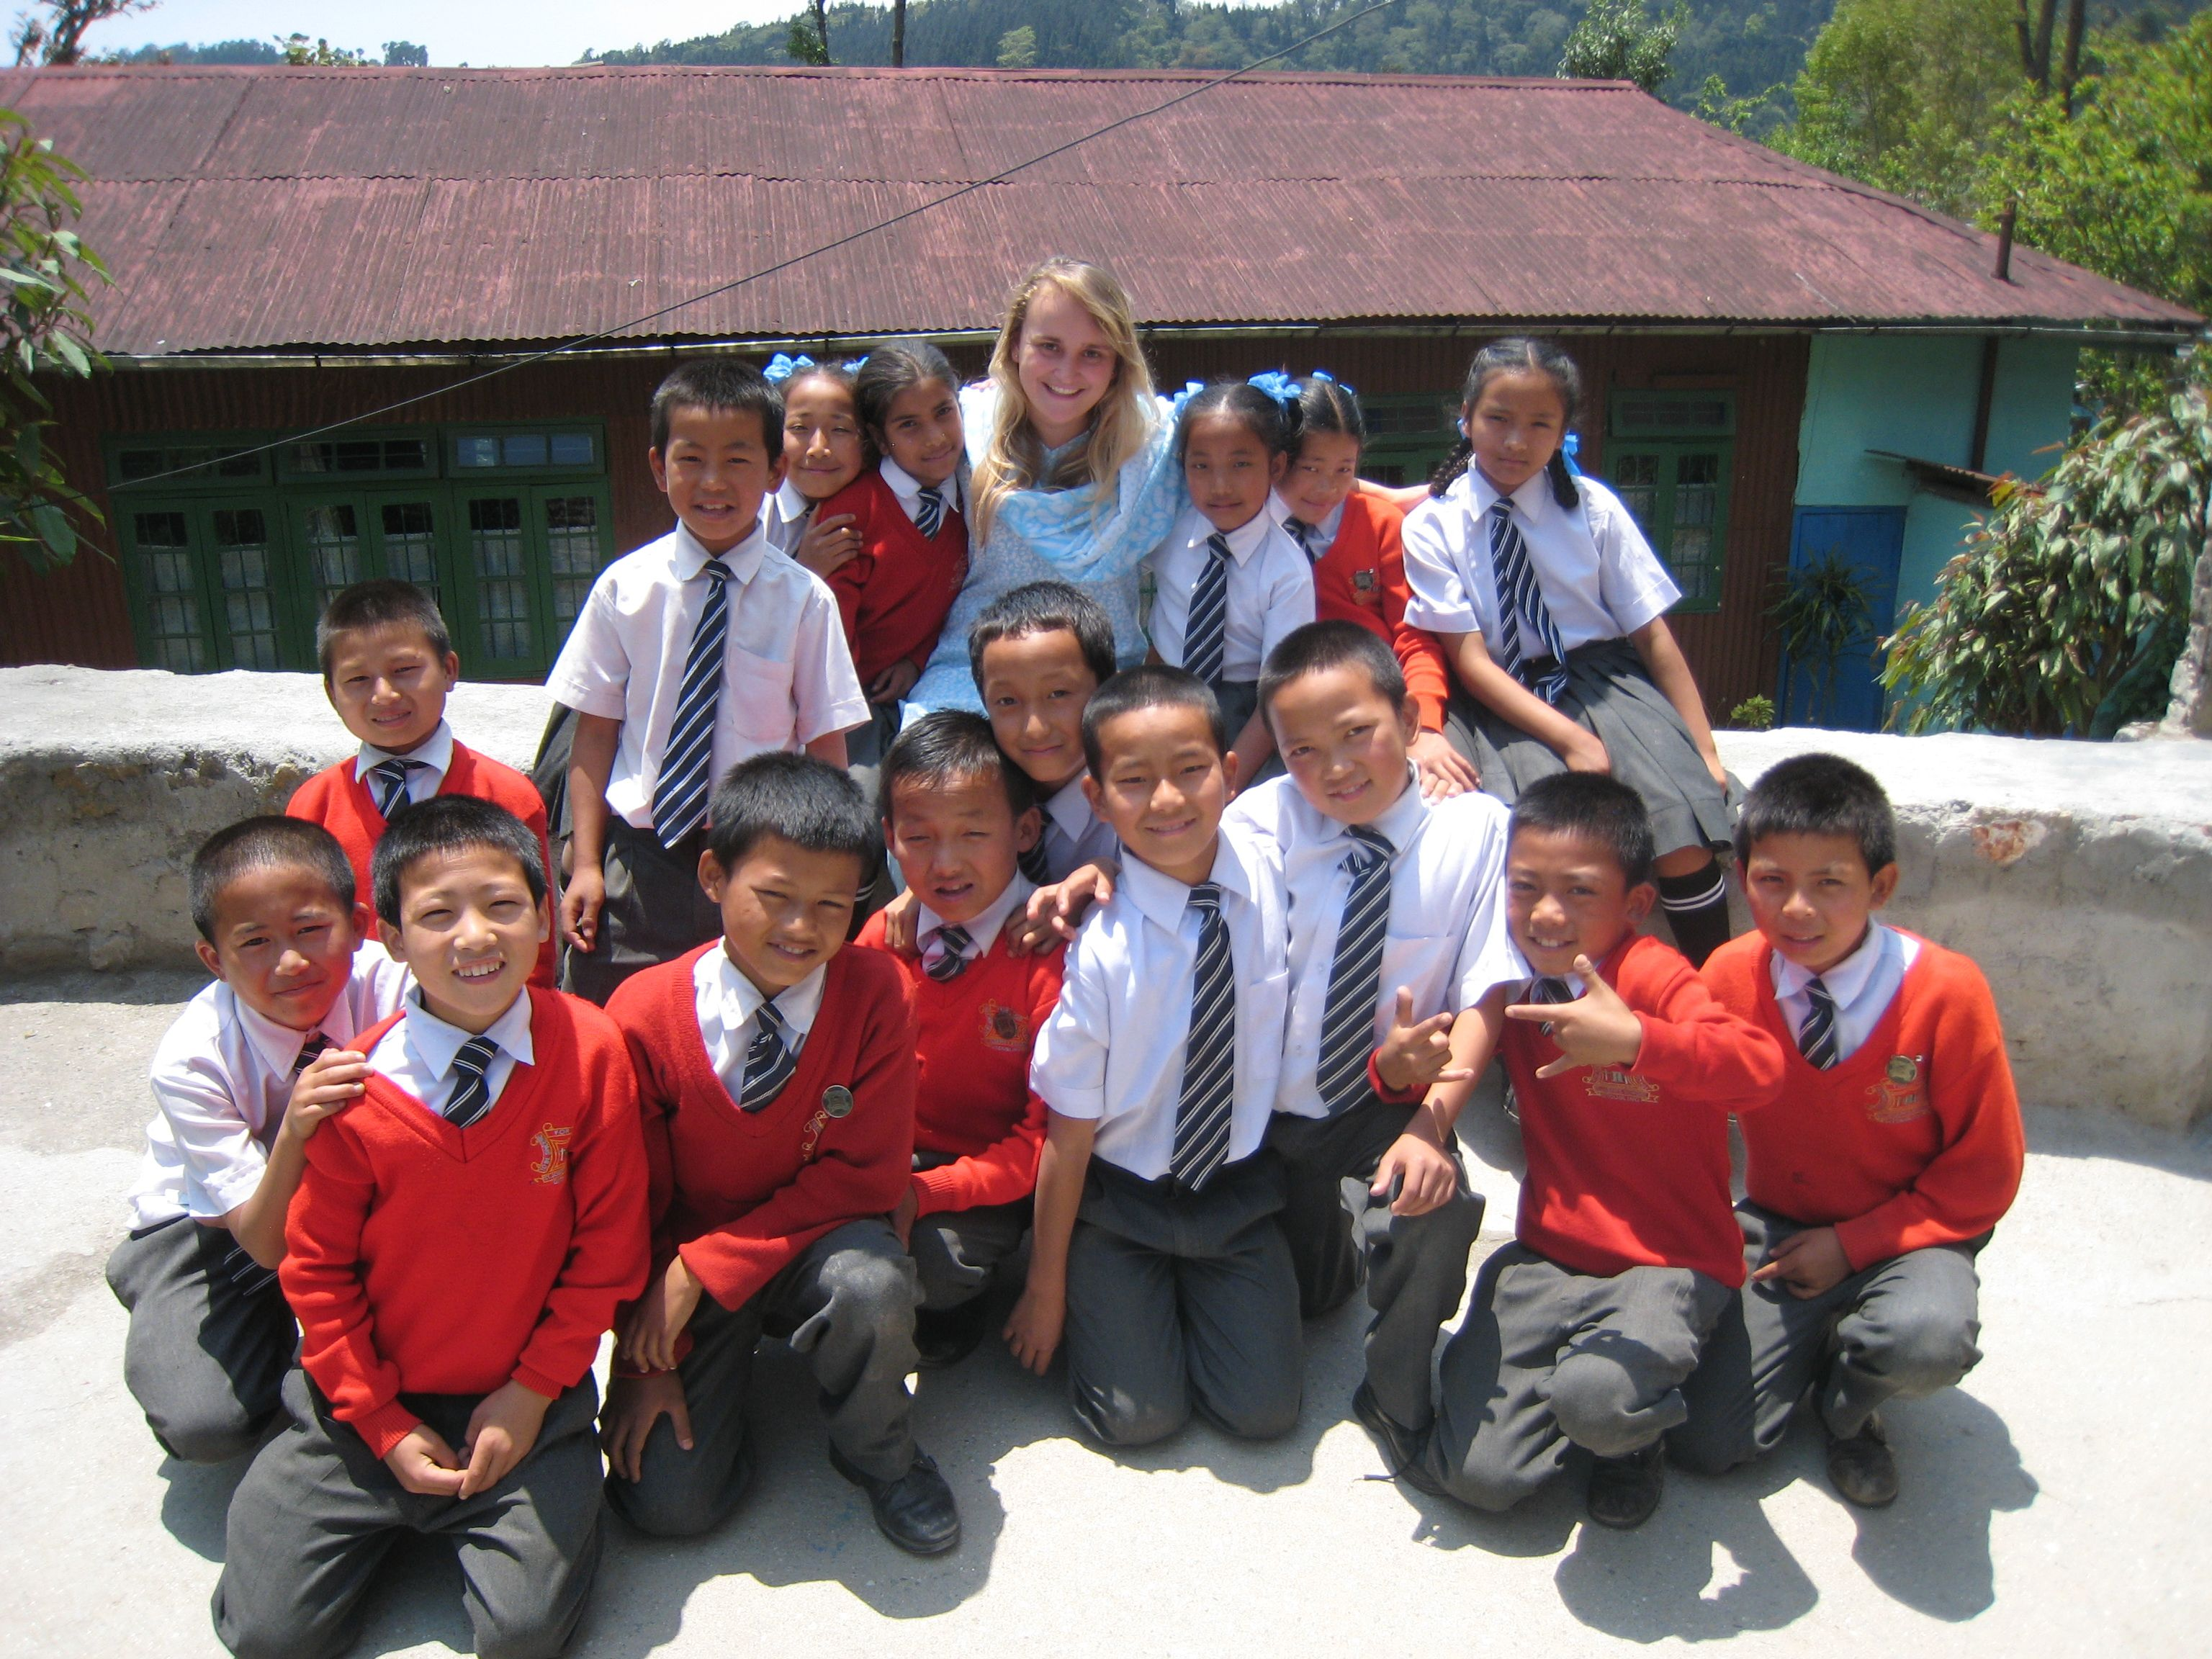 Have an adventure in India on your Gap Year teaching children